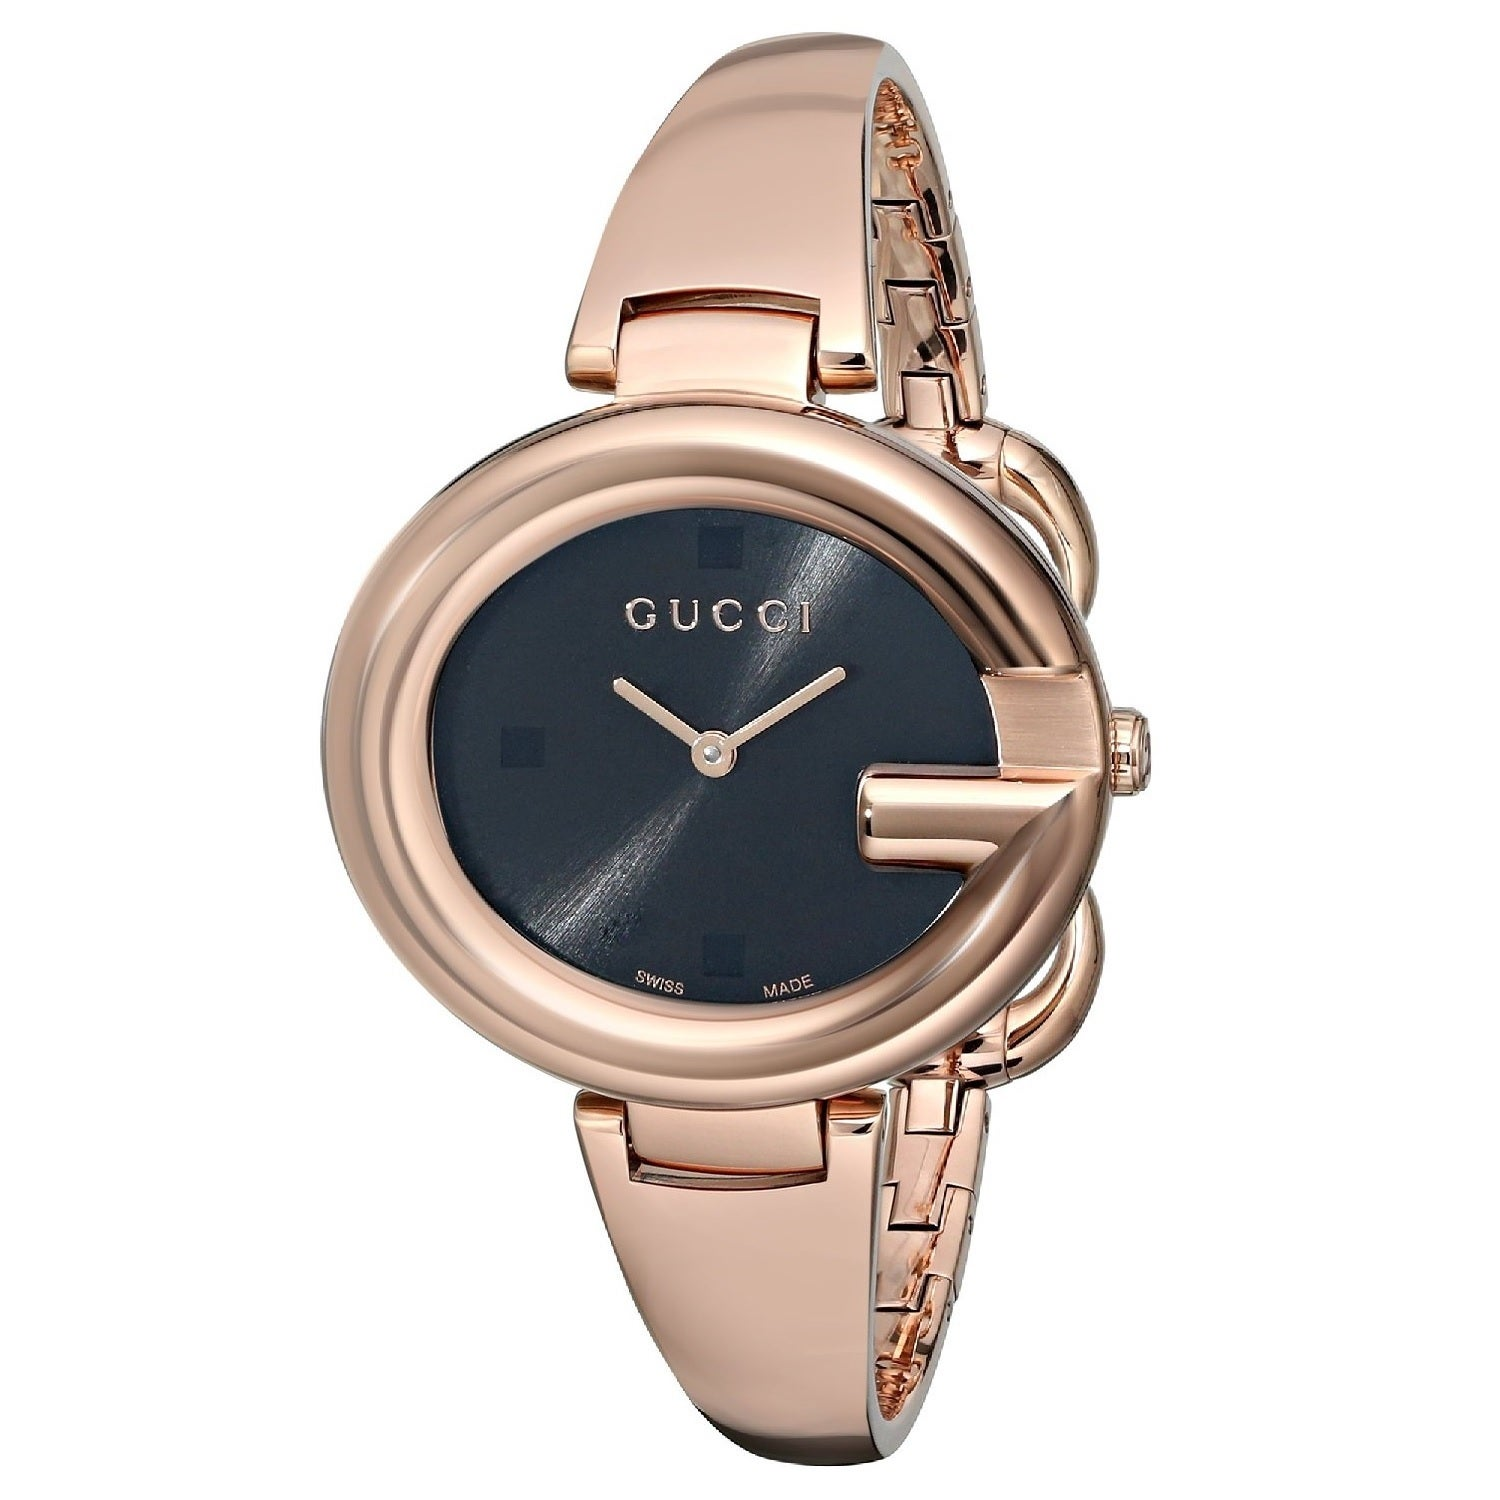 8a421628c4ca2 Gucci Women's 'Guccissima' Swiss Quartz Rose Gold Stainless Steel Bangle  Watch